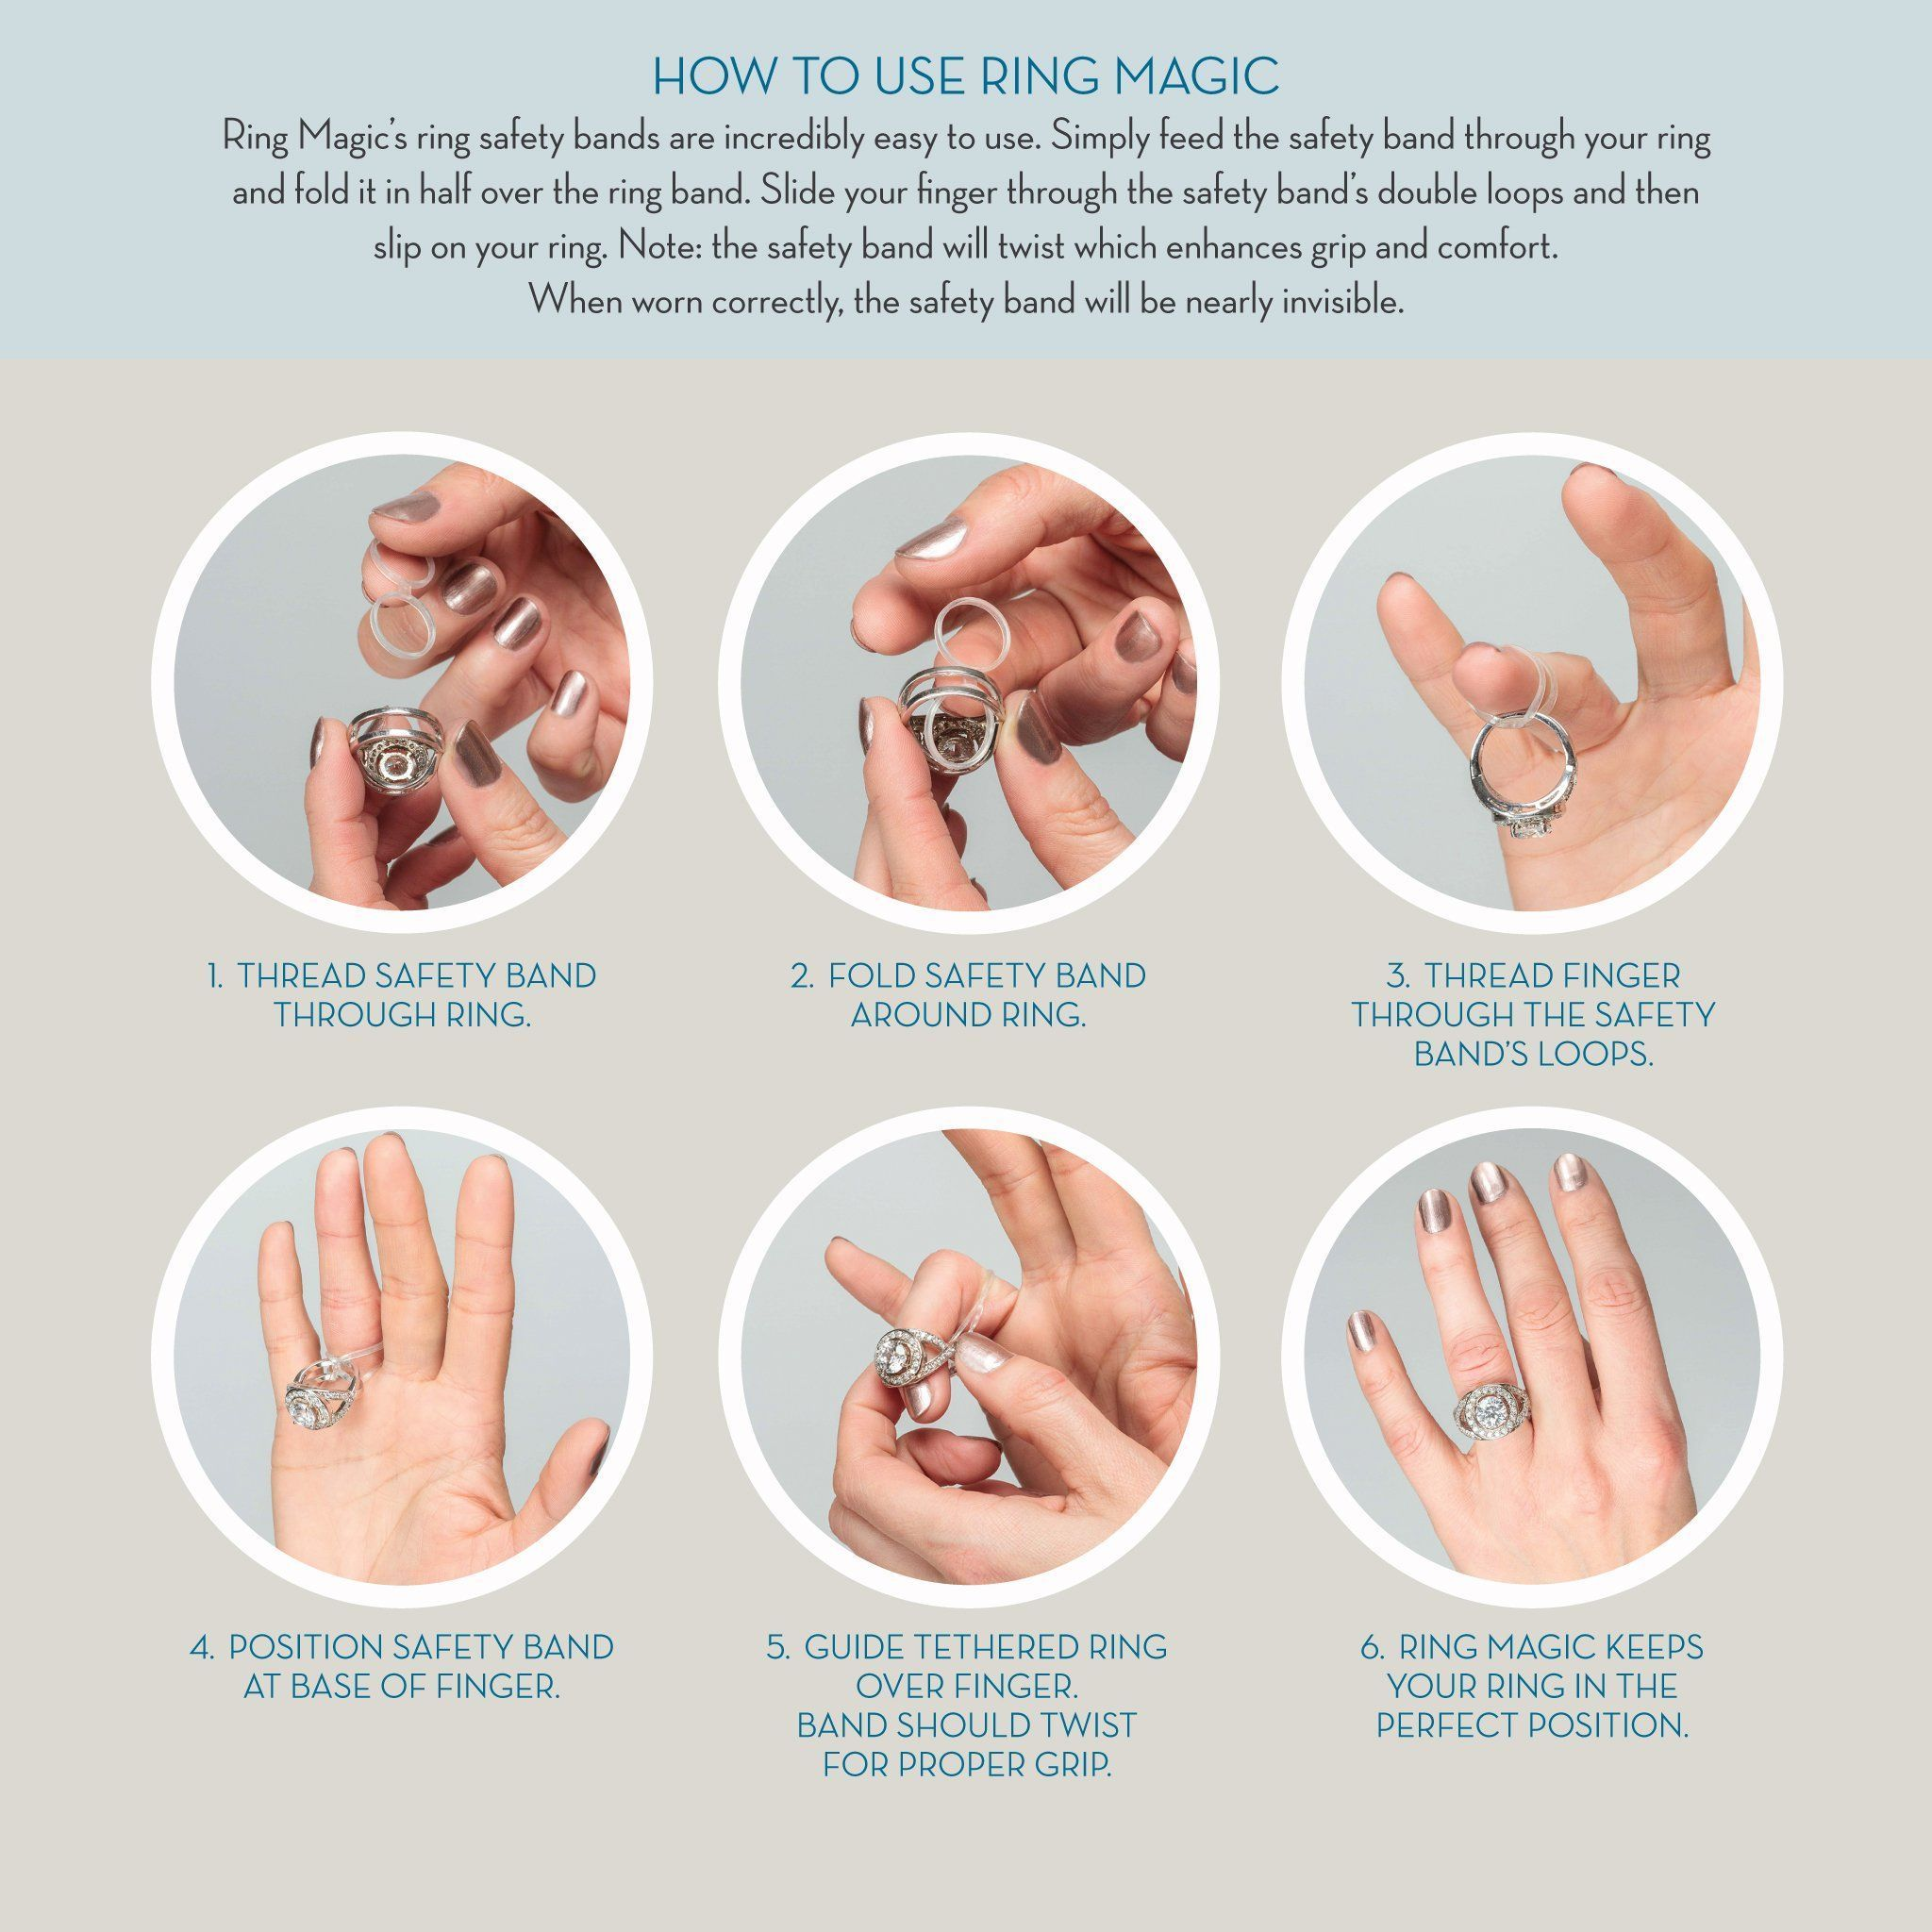 How To Make A Big Ring Smaller In Case Of Losing Weight Like Me How To Make Rings Make A Ring Smaller Big Rings